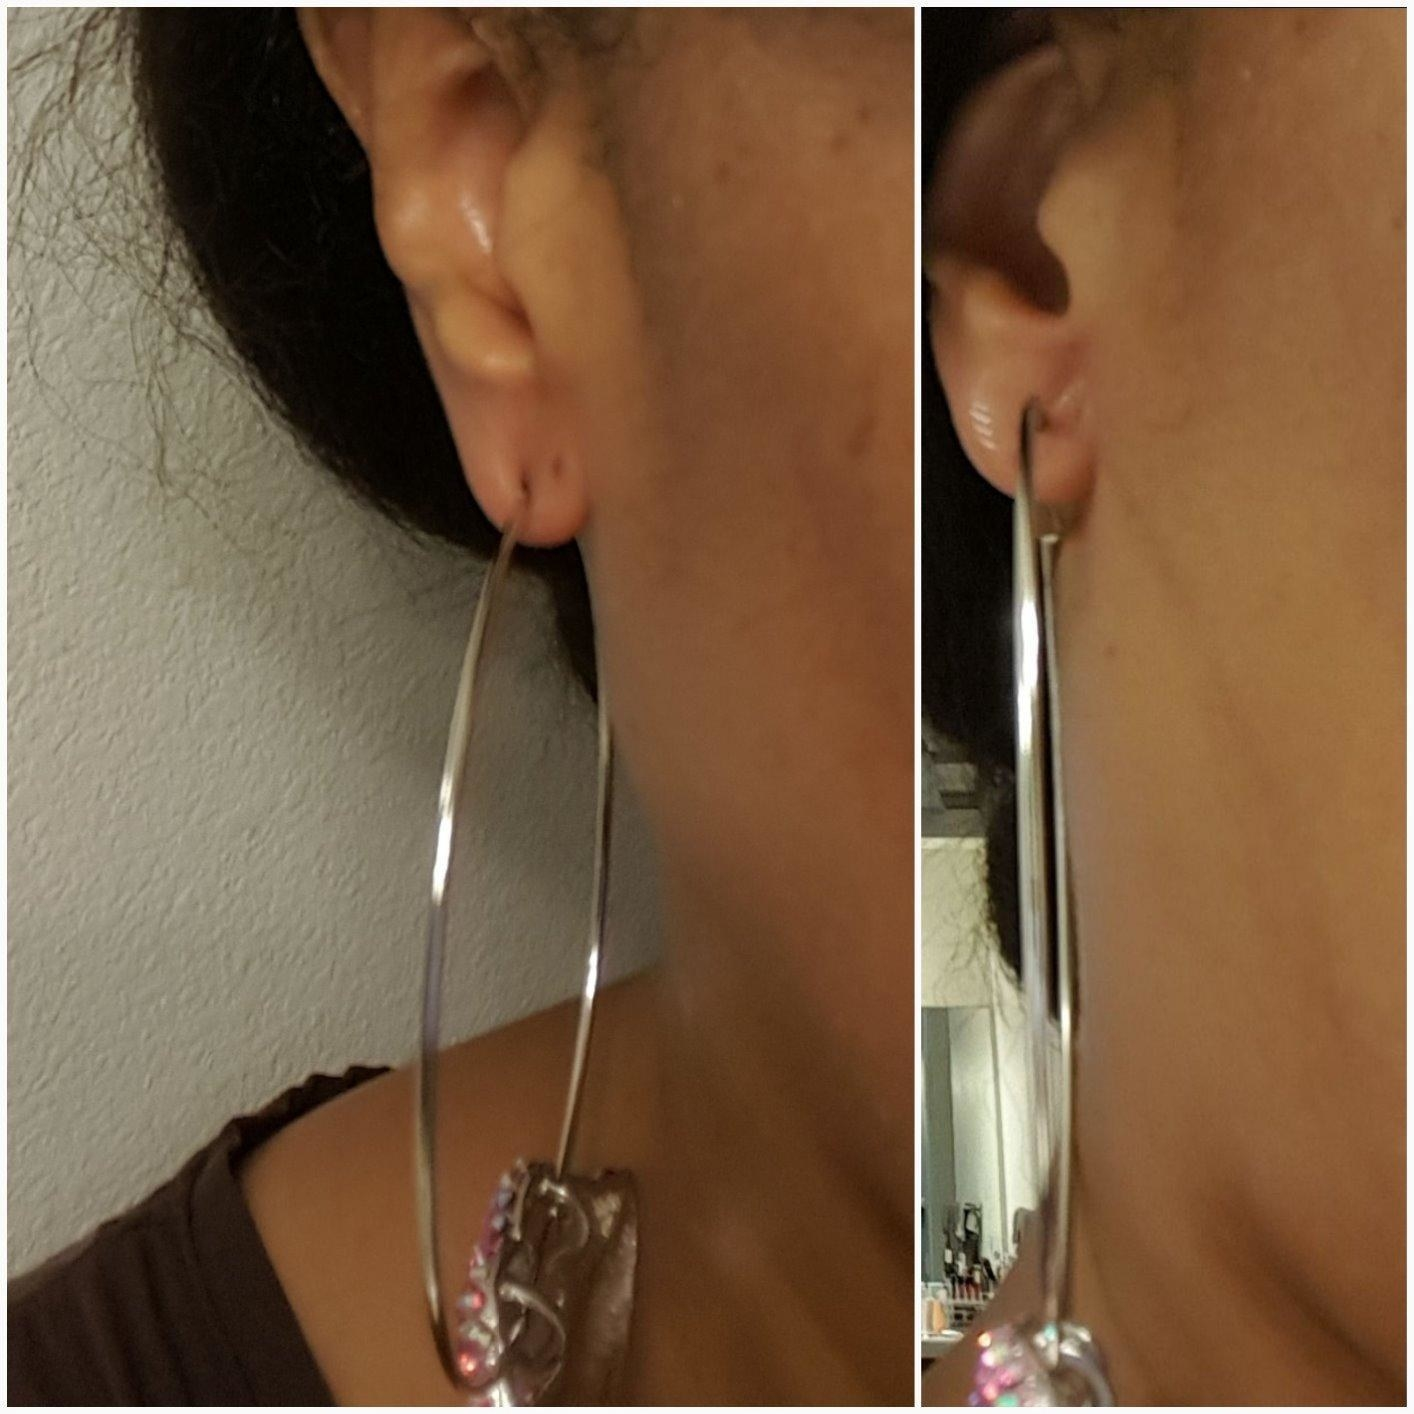 Before photo of a reviewer wearing large hoops and their piercing hole appears slightly stretched next to an after photo of the same reviewer wearing a patch so the earring doesn't look droopy